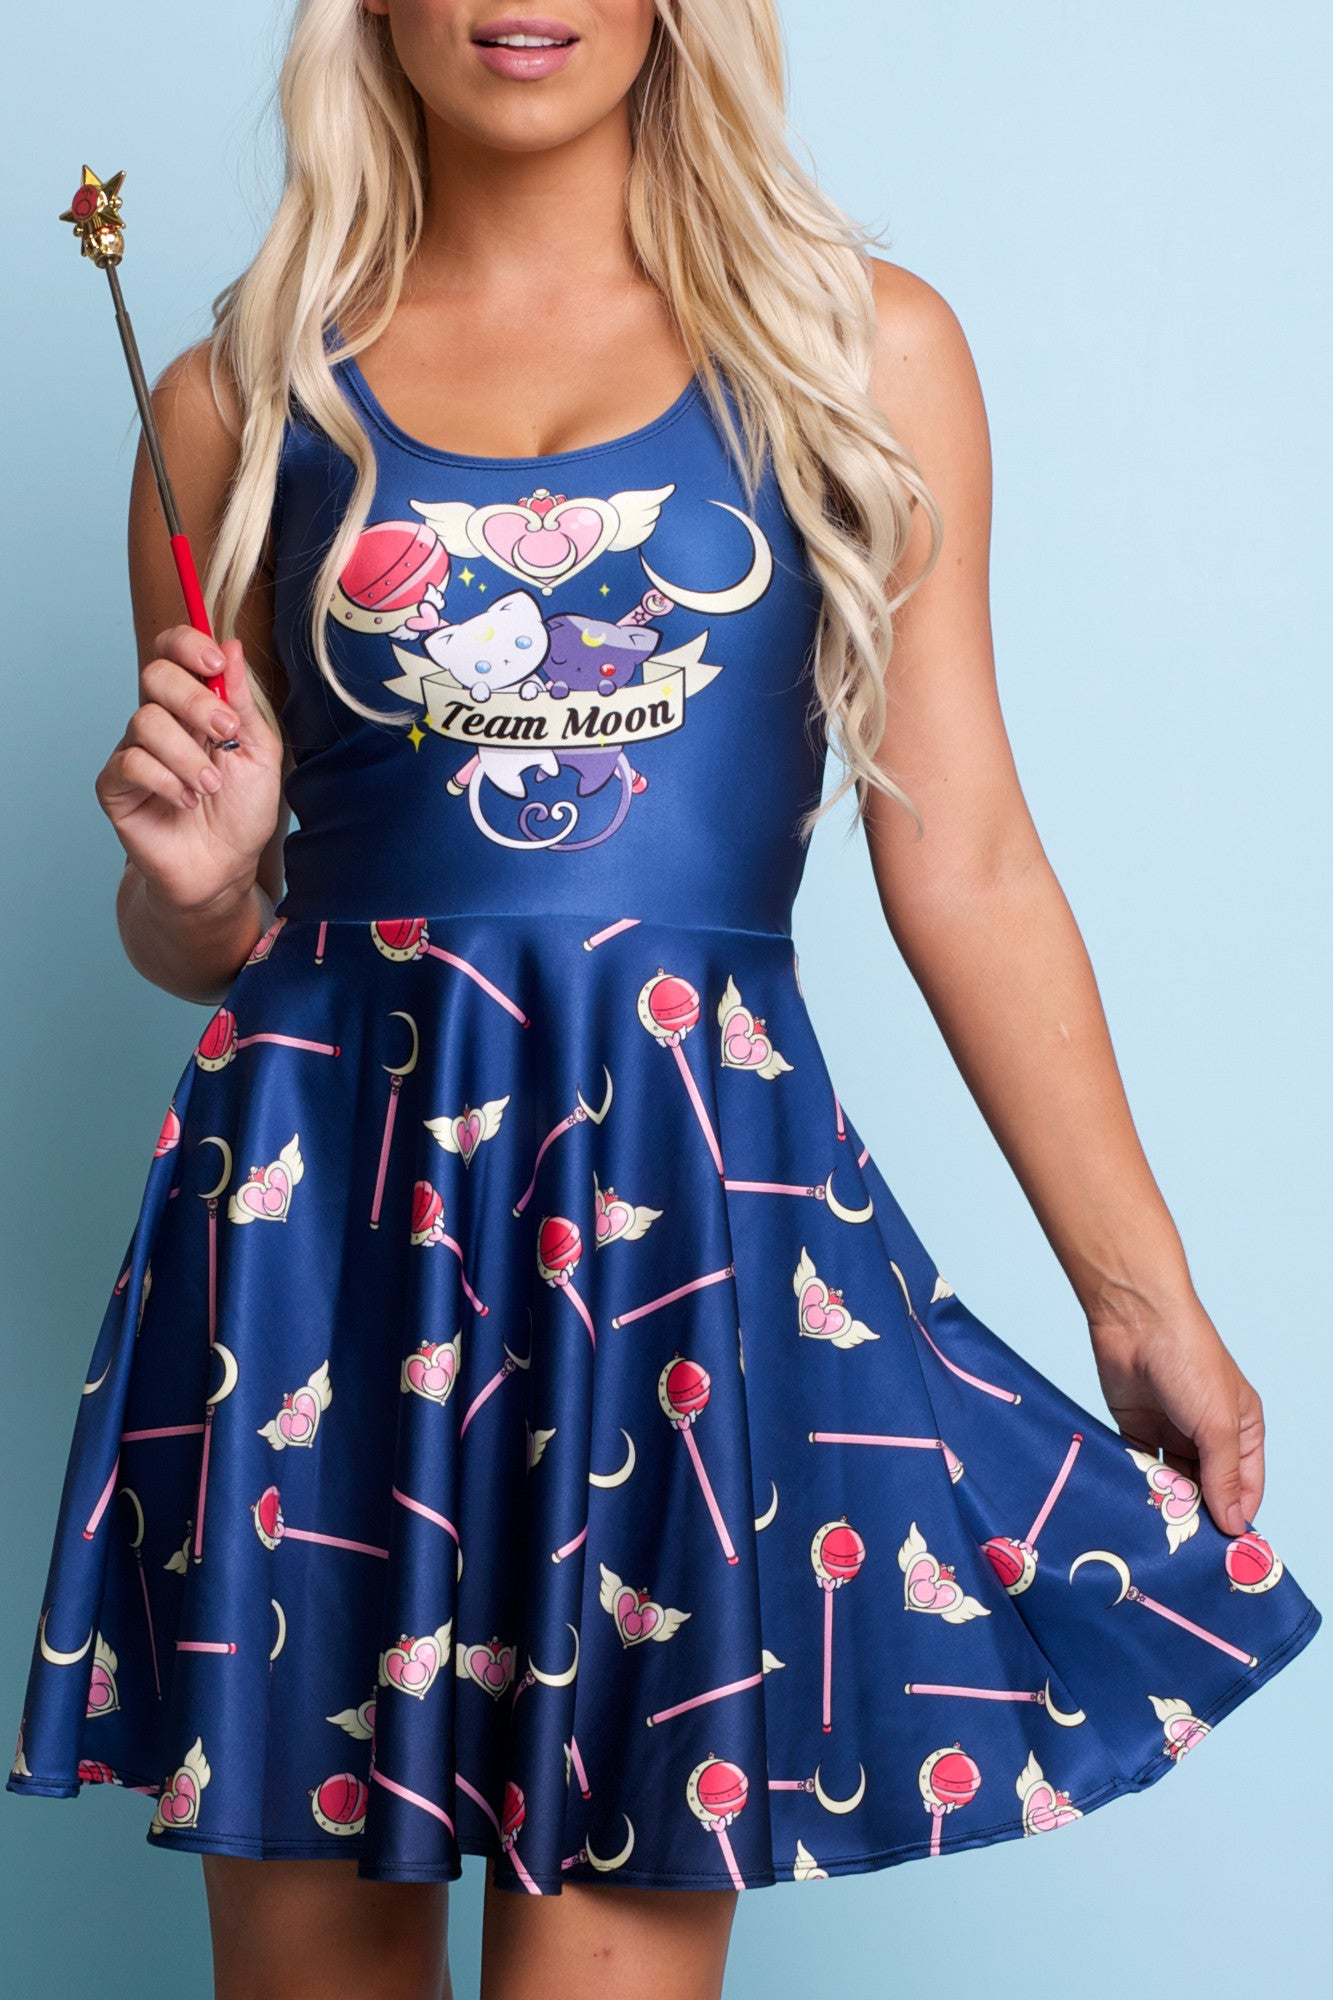 Team Moon Skater Dress